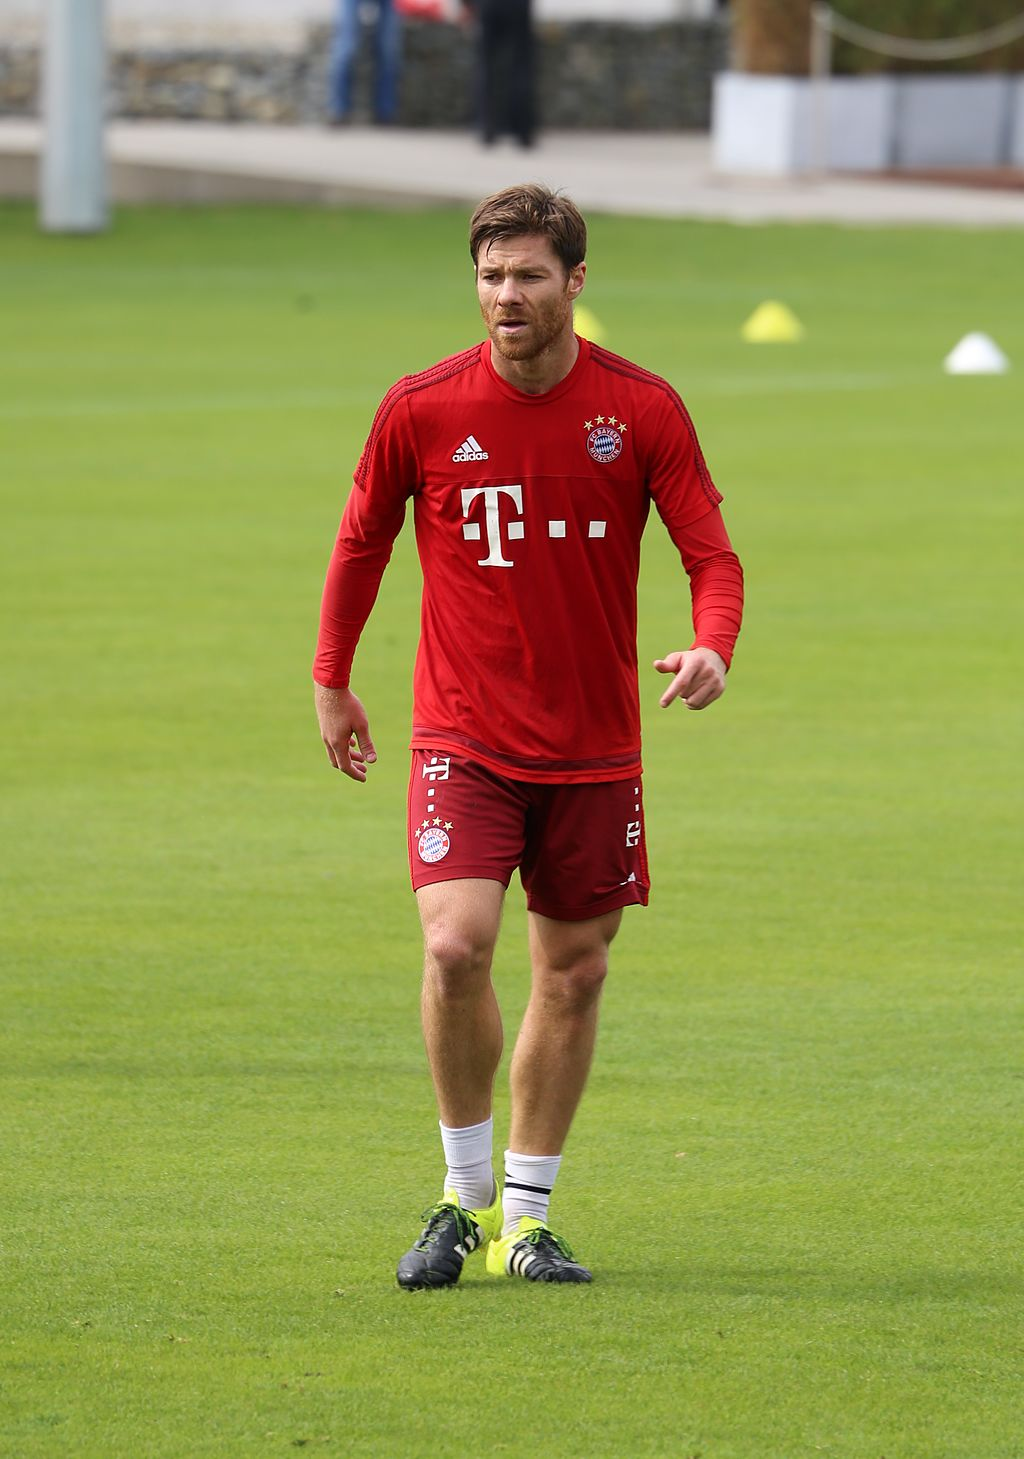 Xabi Alonso Boyut | By Rufus46 [CC BY-SA 3.0  (https://creativecommons.org/licenses/by-sa/3.0)], from Wikimedia Commons